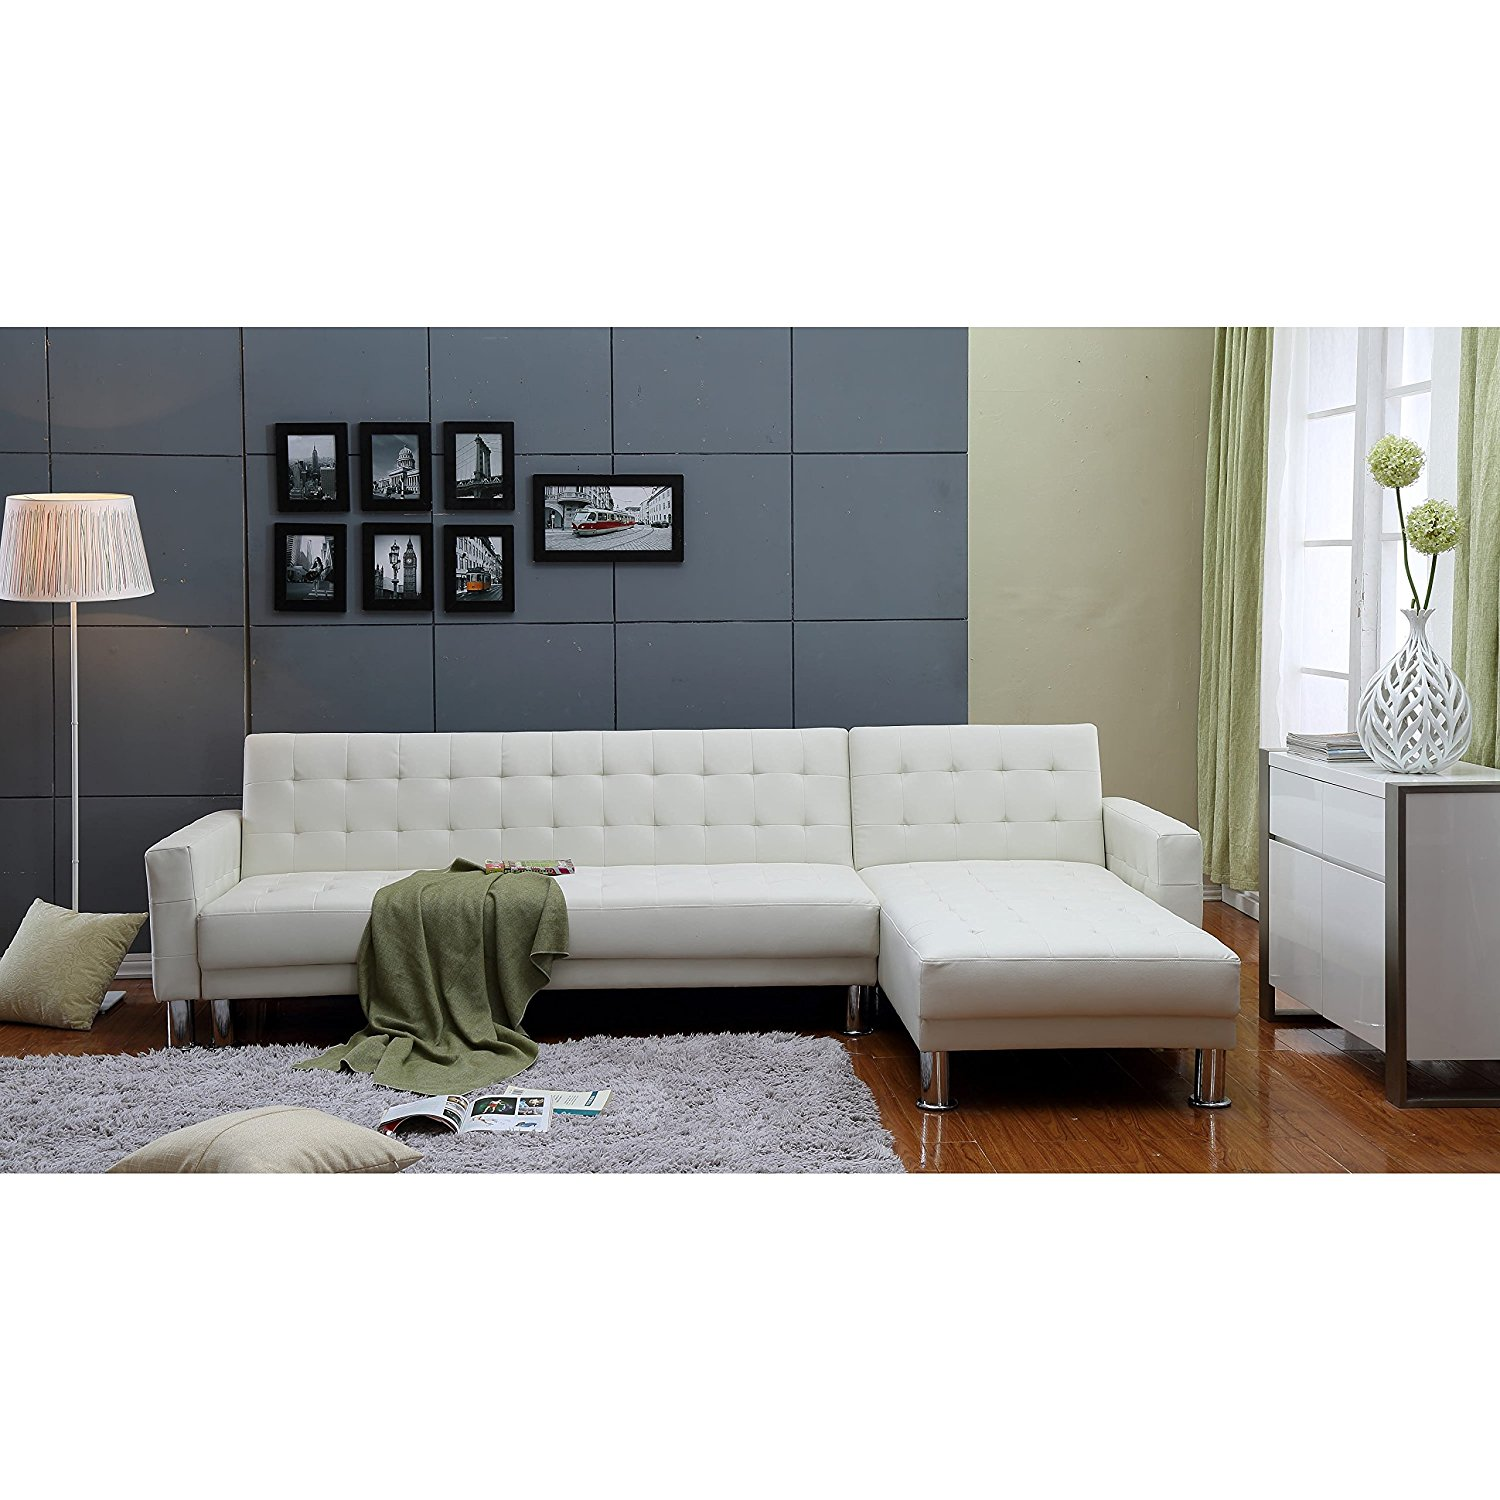 THY-HOM the-Hom Marsden 2-piece White Tufted Bi-cast Leather Sectional Sofa Bed